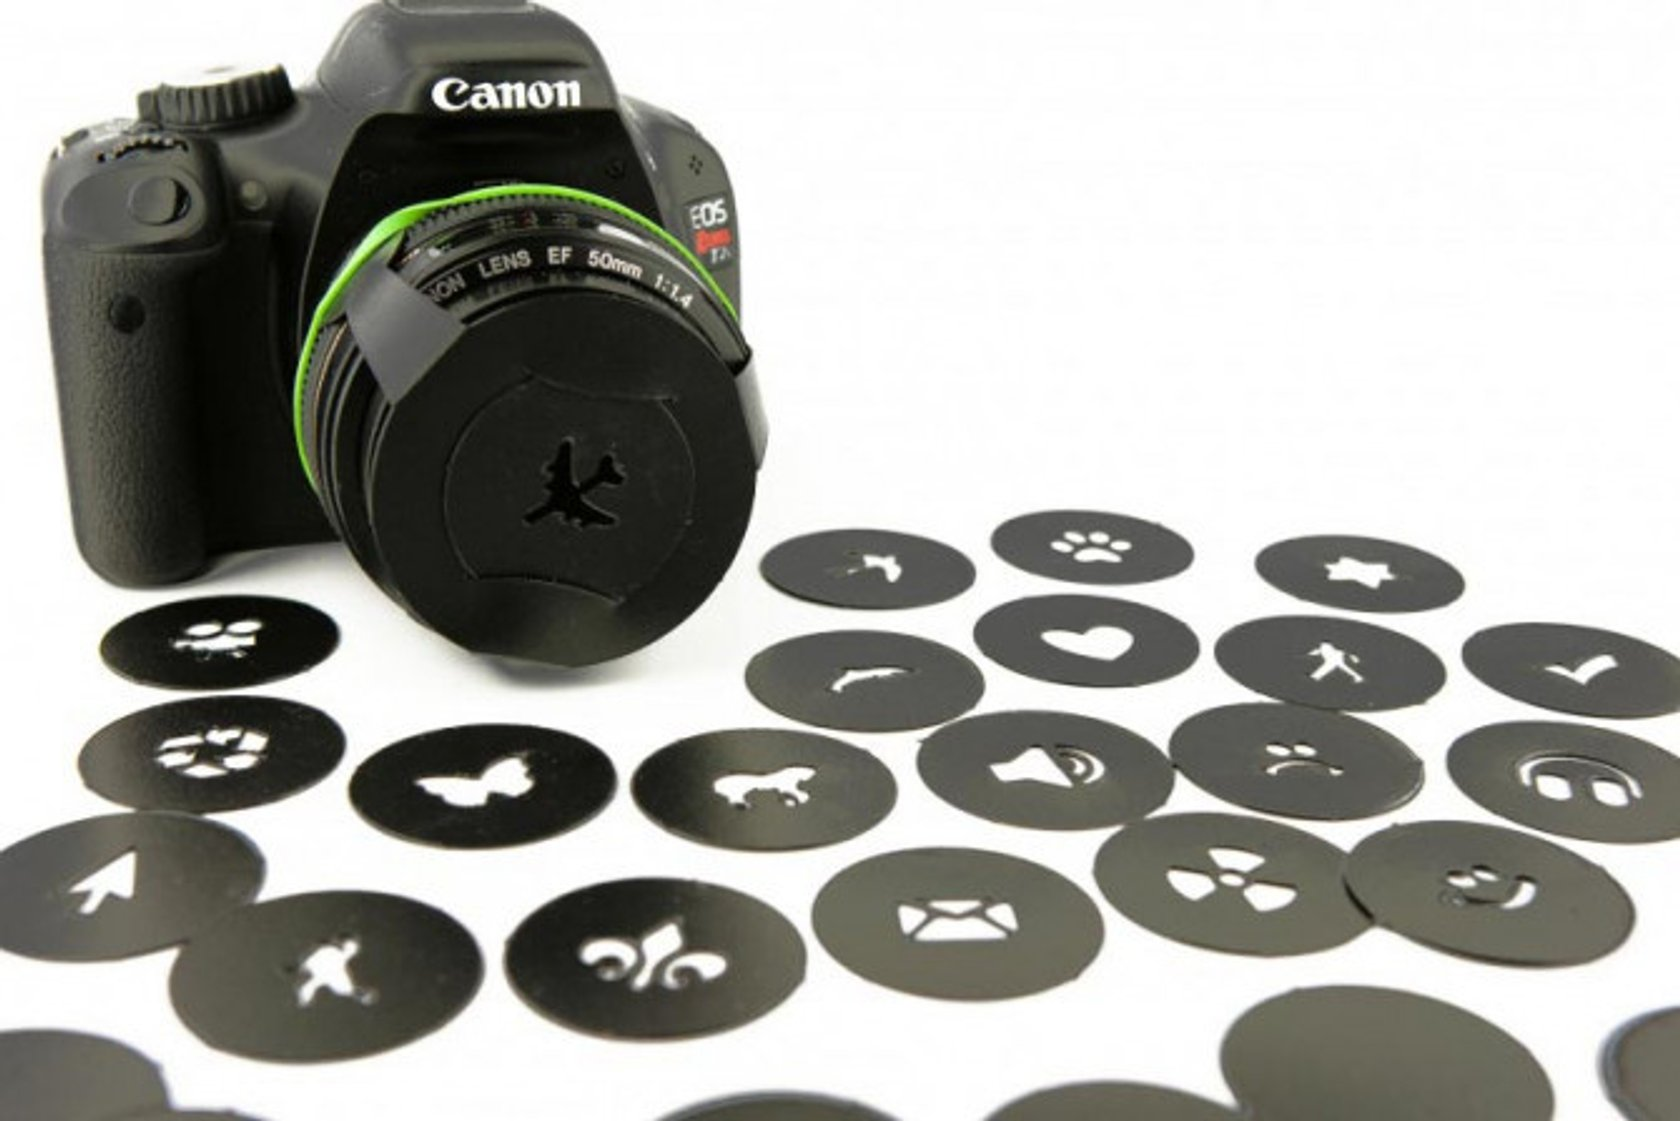 Bokeh Masters Kit Amazing And Useful Gifts For Photographers Image2